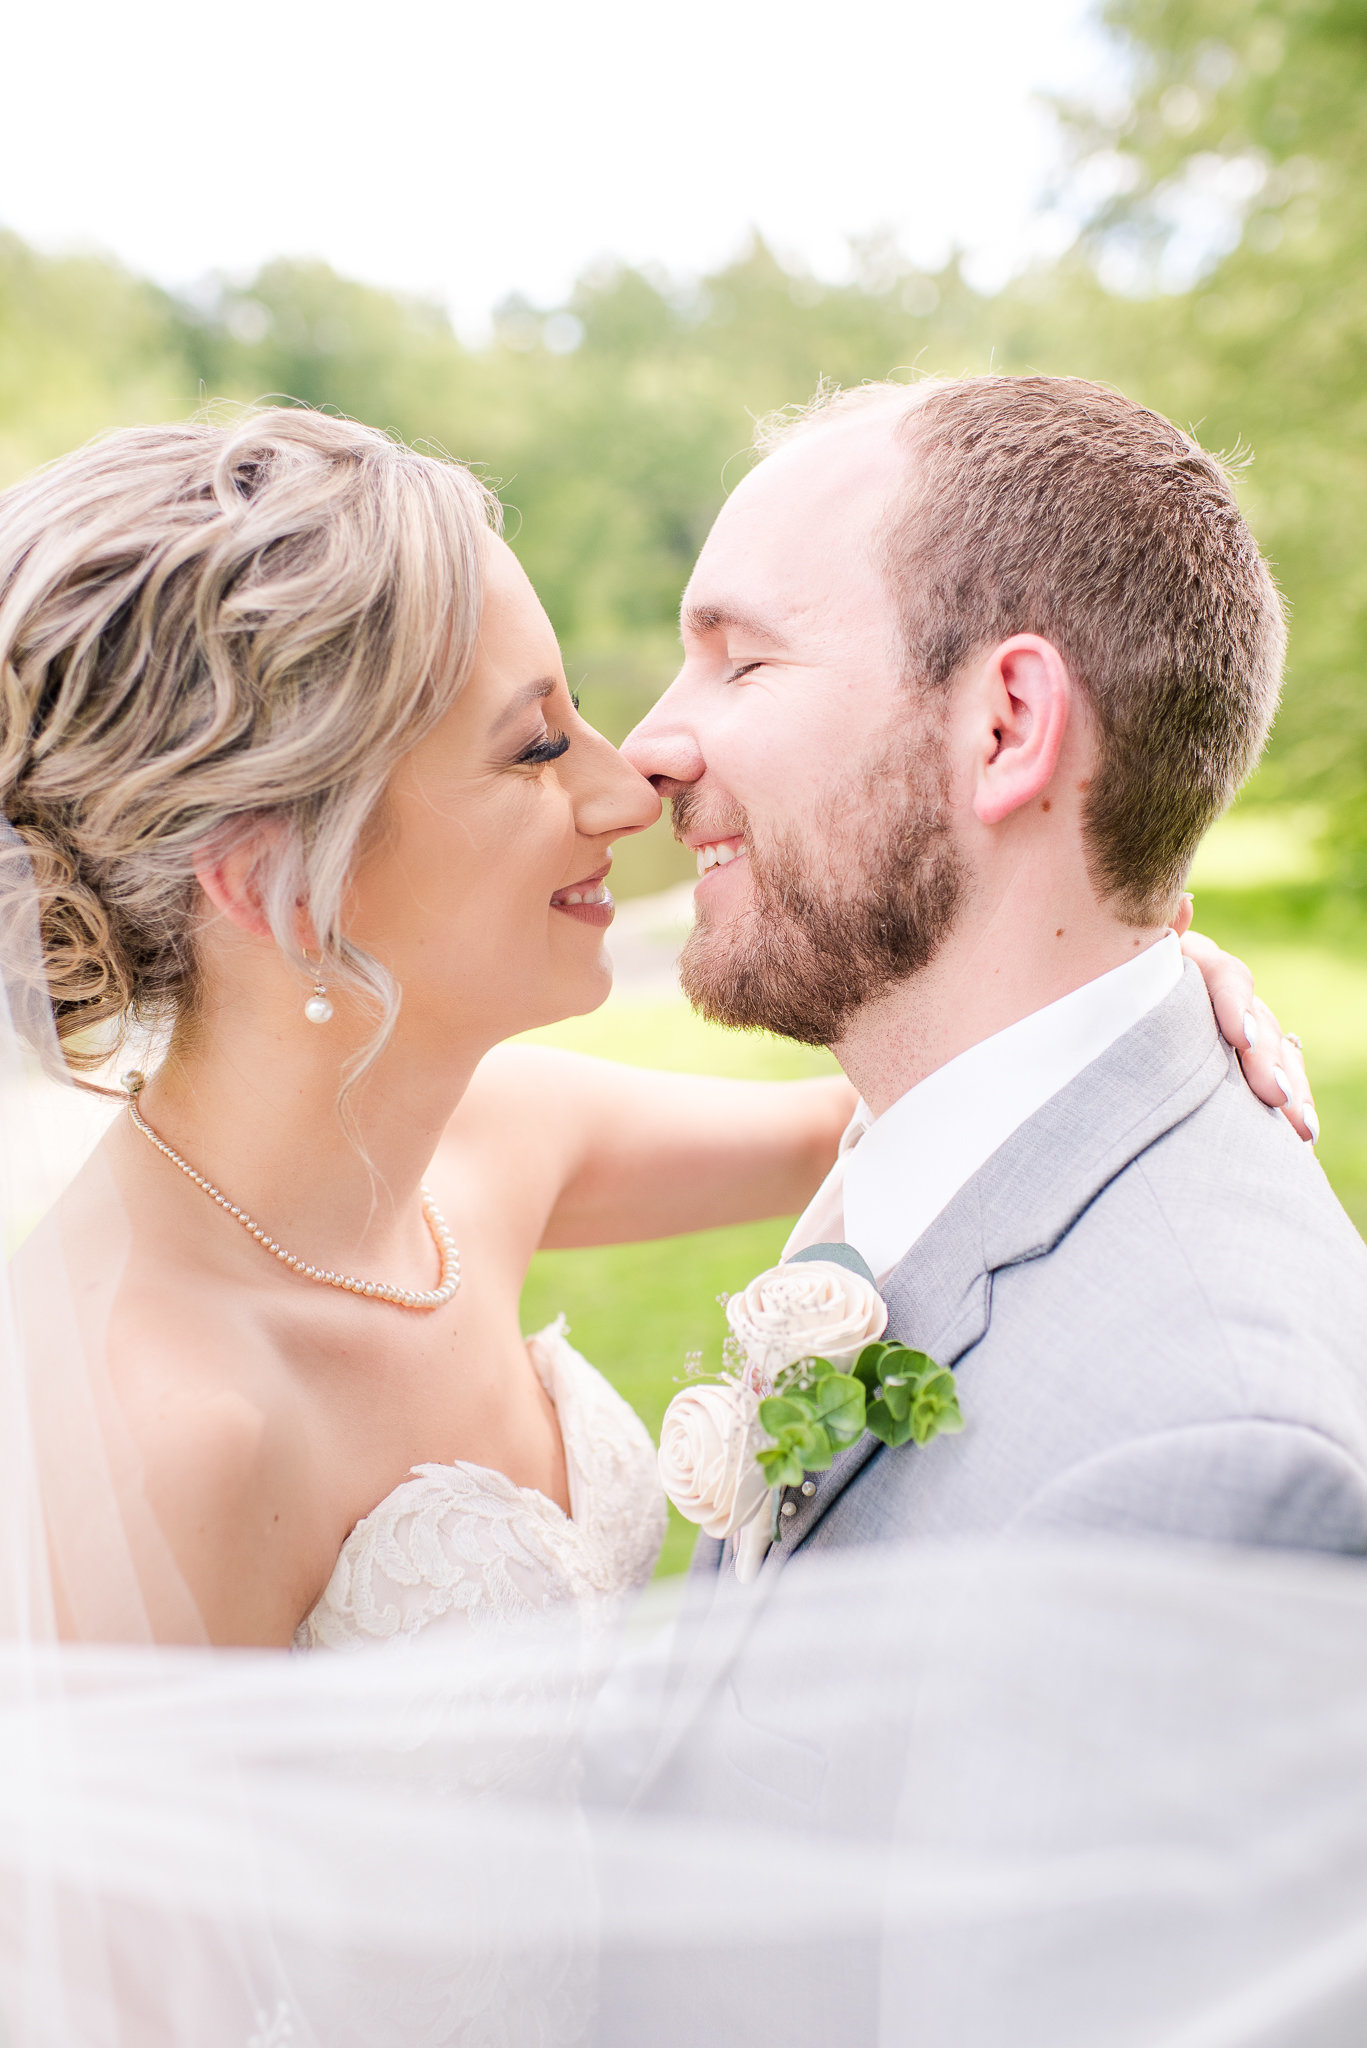 danielle kristine photography- Shane + Nickis' wedding-9